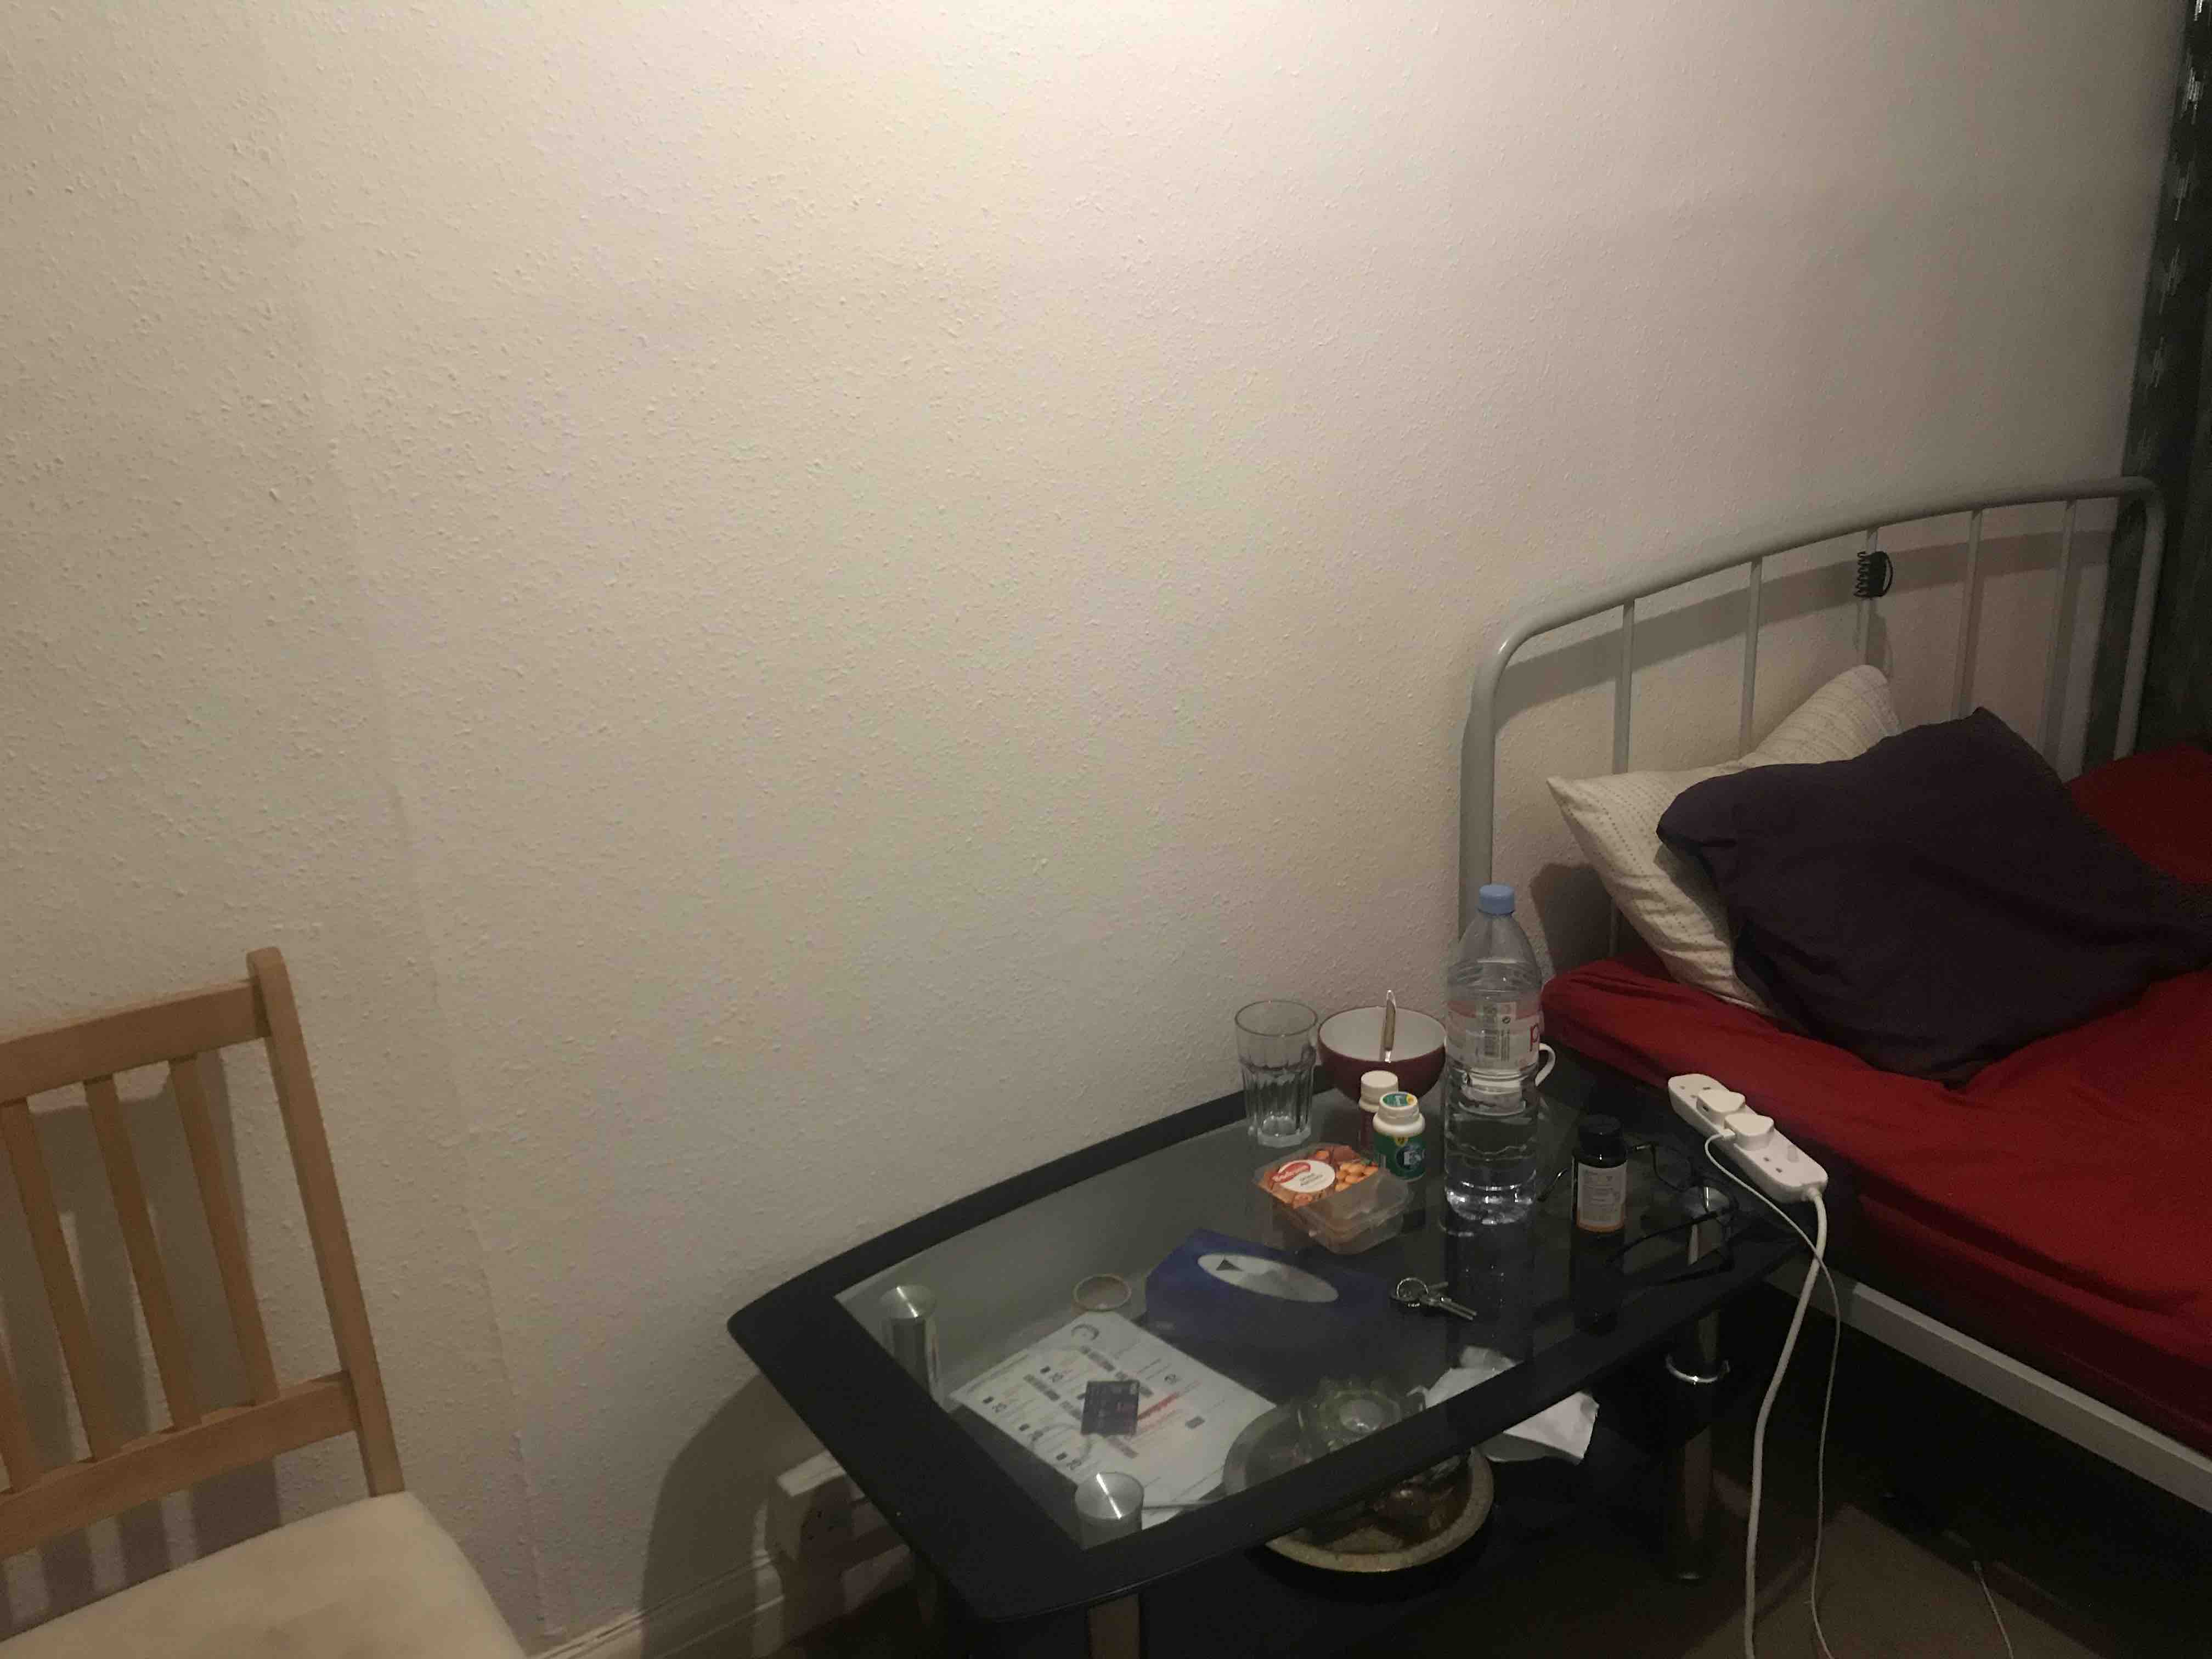 1 room in West Barnes, New Malden, KT36JF RoomsLocal image